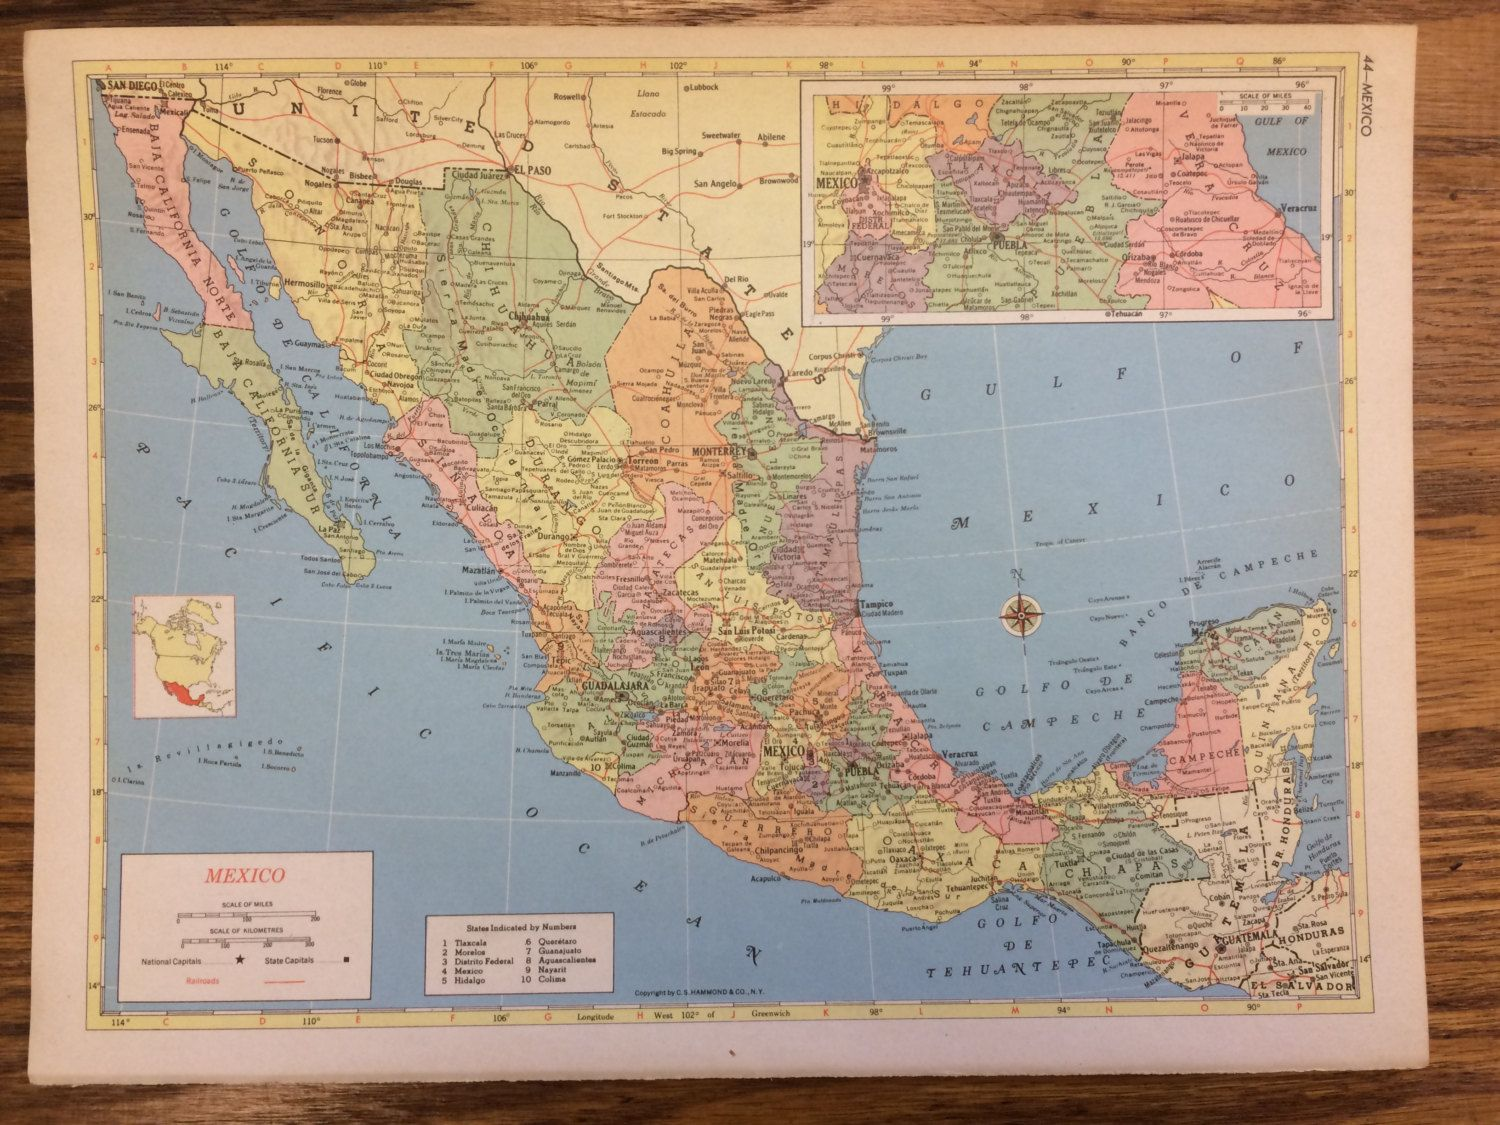 Mexico large map 1955 hammonds new supreme world atlas vintage 1955 mexico large map hammonds new supreme world atlas vintage by passinthrutime on etsy gumiabroncs Choice Image